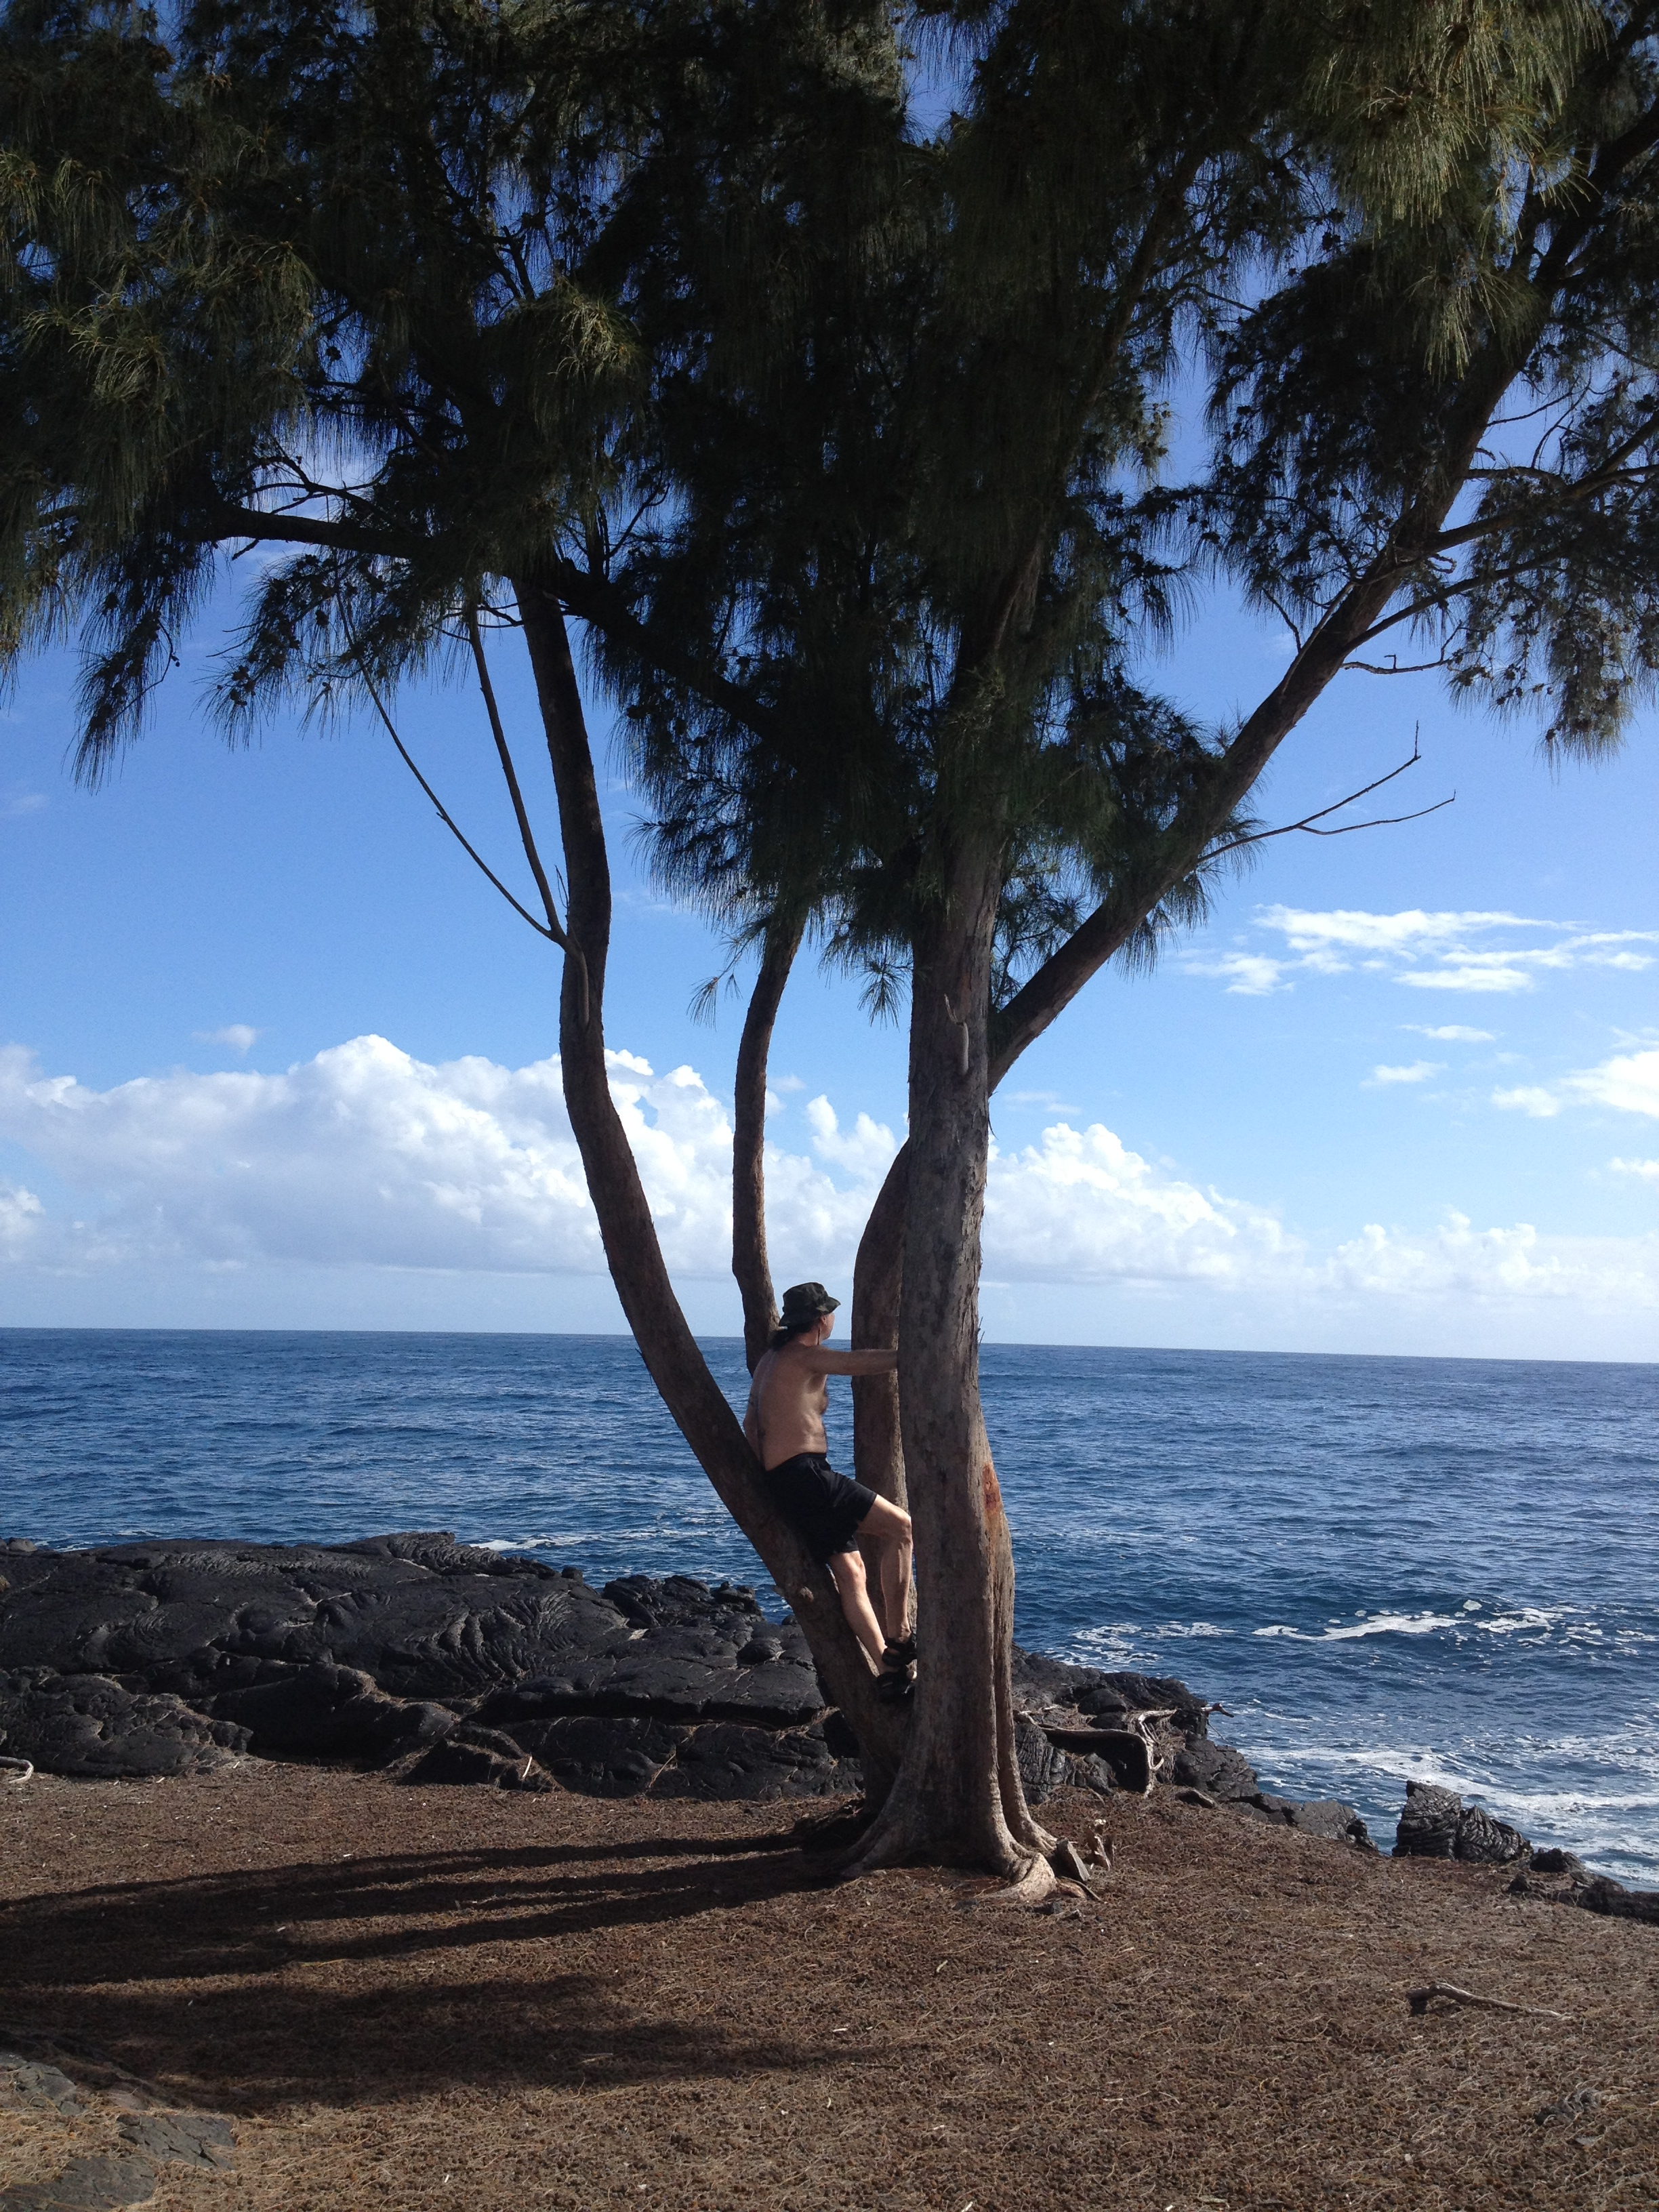 Kai on tree by ocean